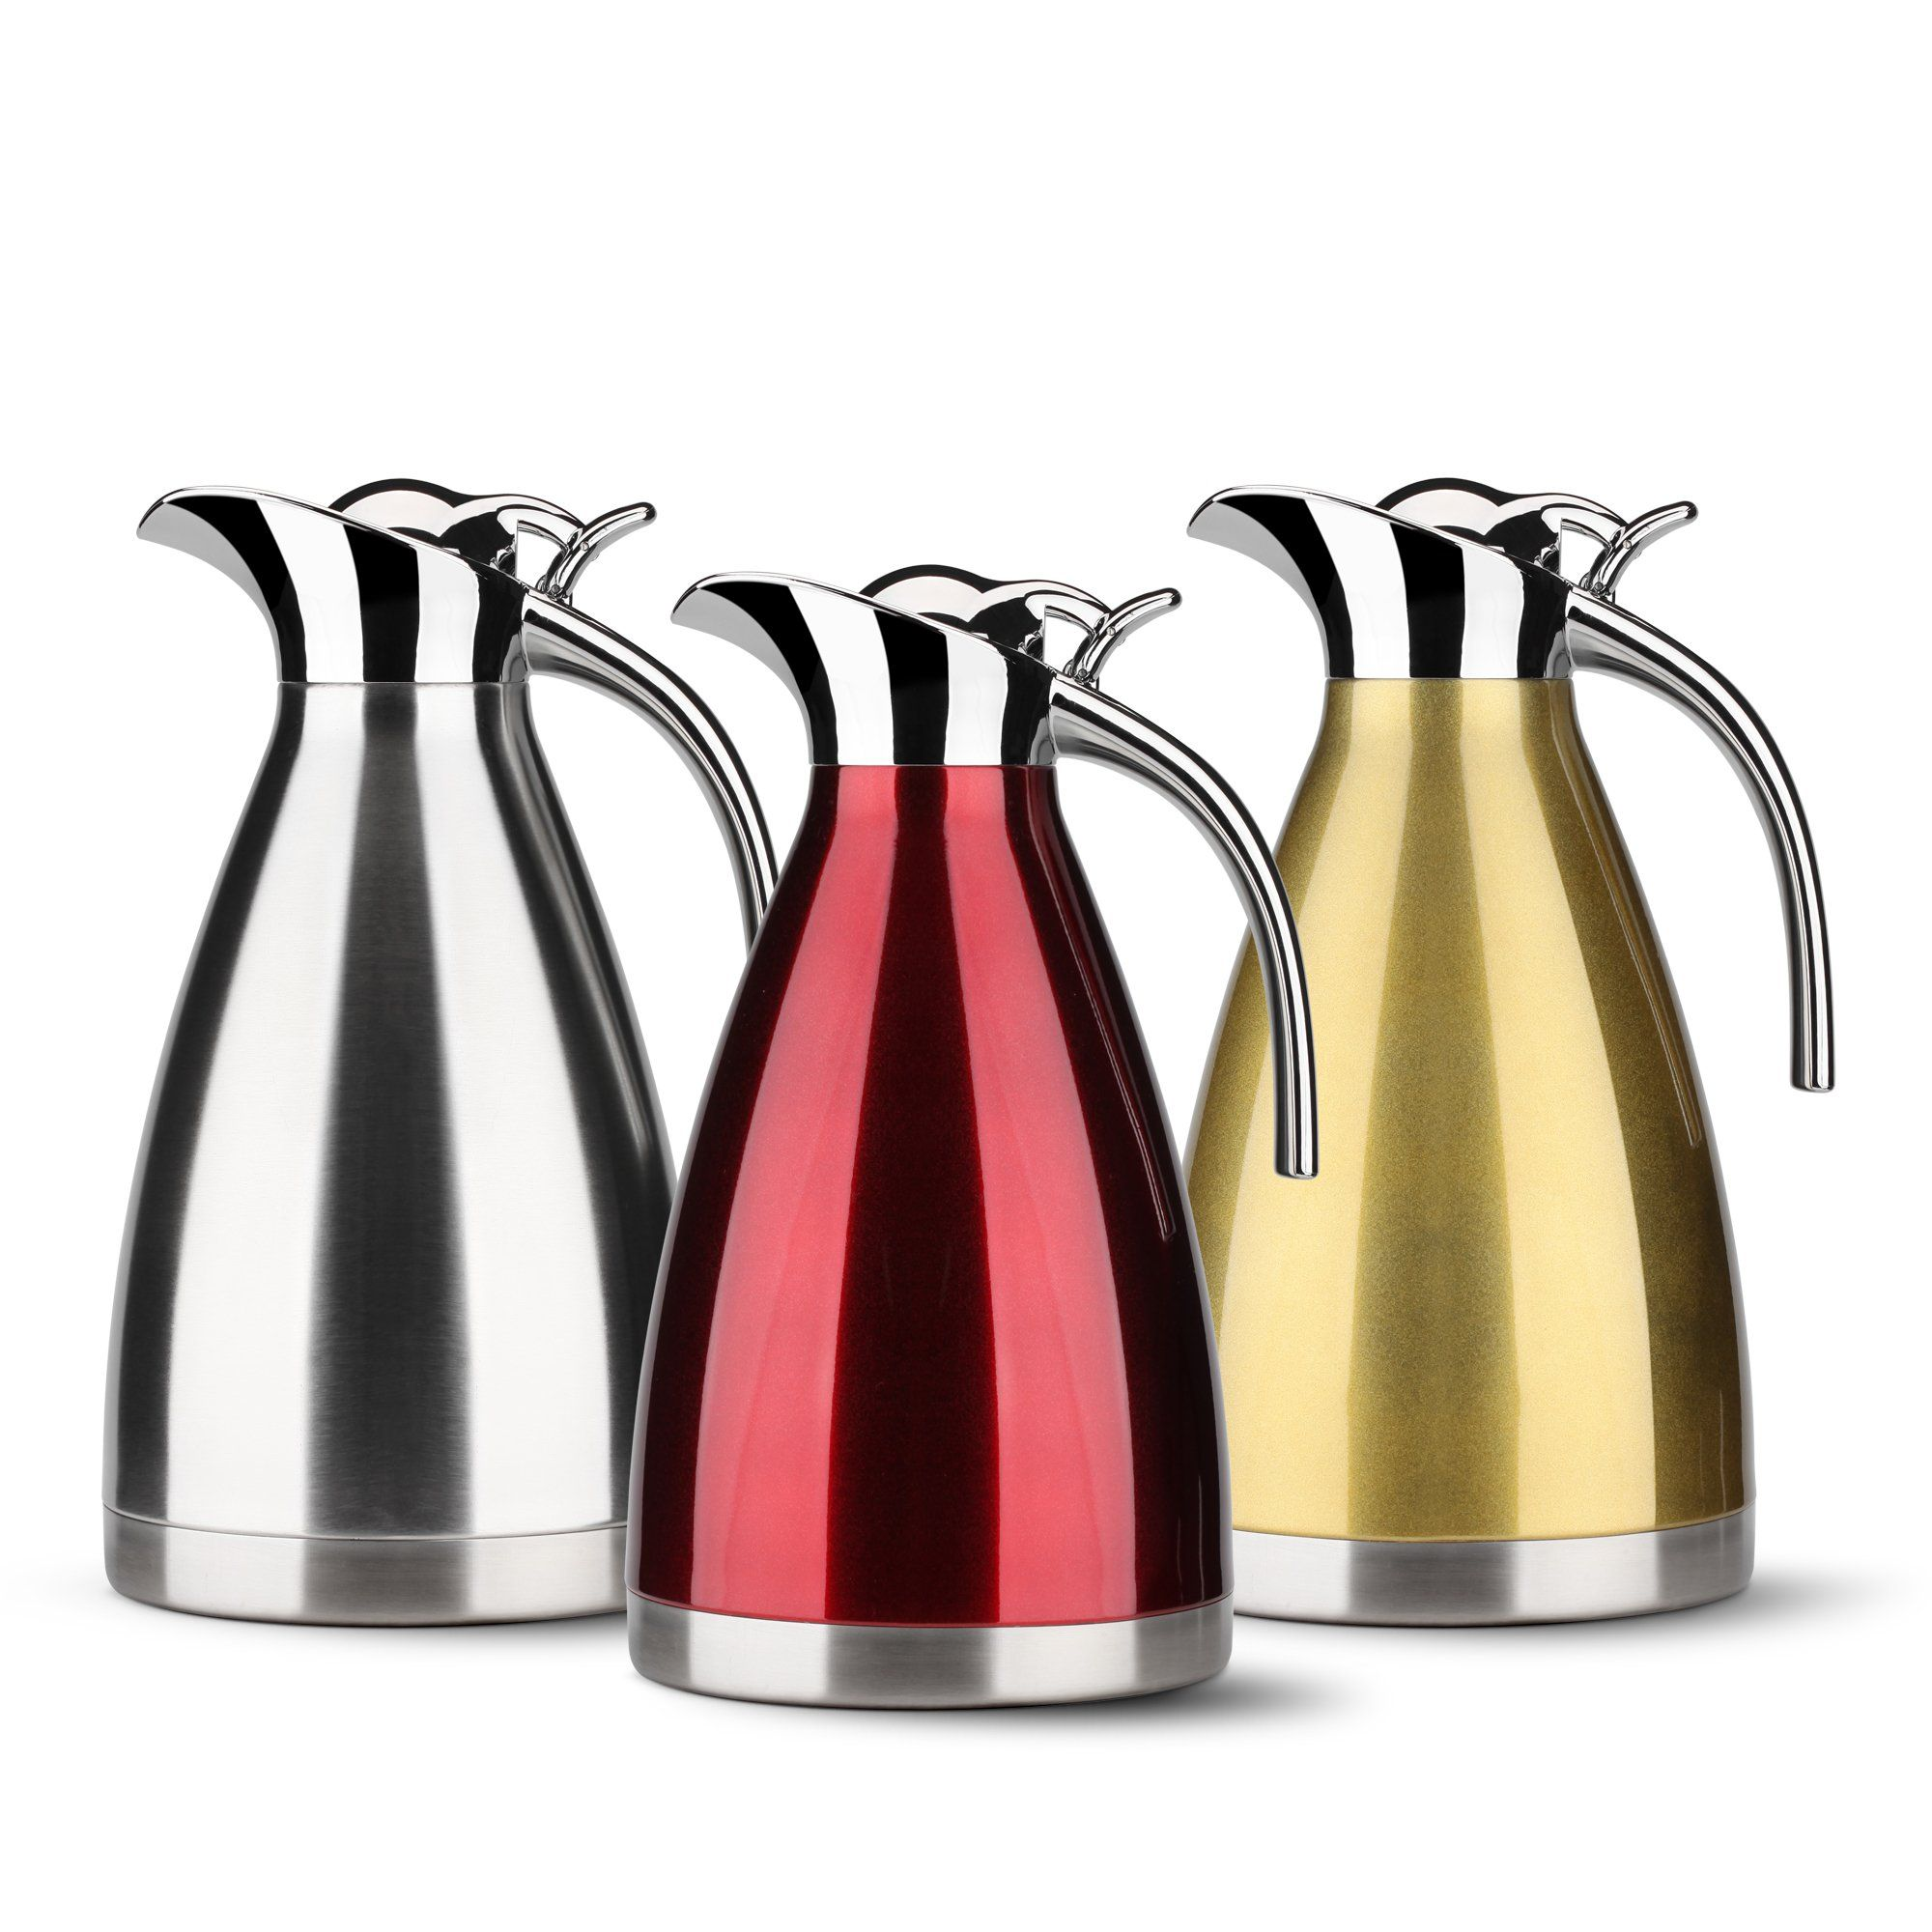 HOMKO Insulated Coffee Carafe 68 oz Stainless Steel